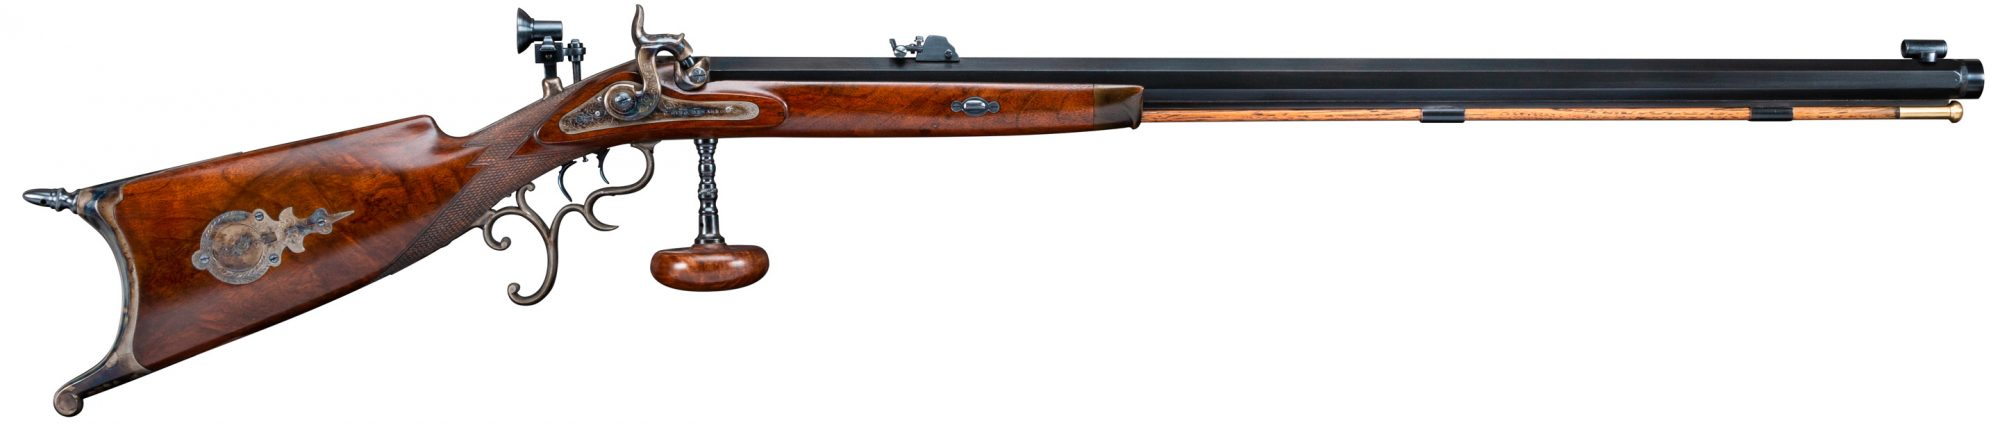 Photo of Germanic-themed percussion Schuetzen rifle, after restoration by Turnbull Restoration Co.